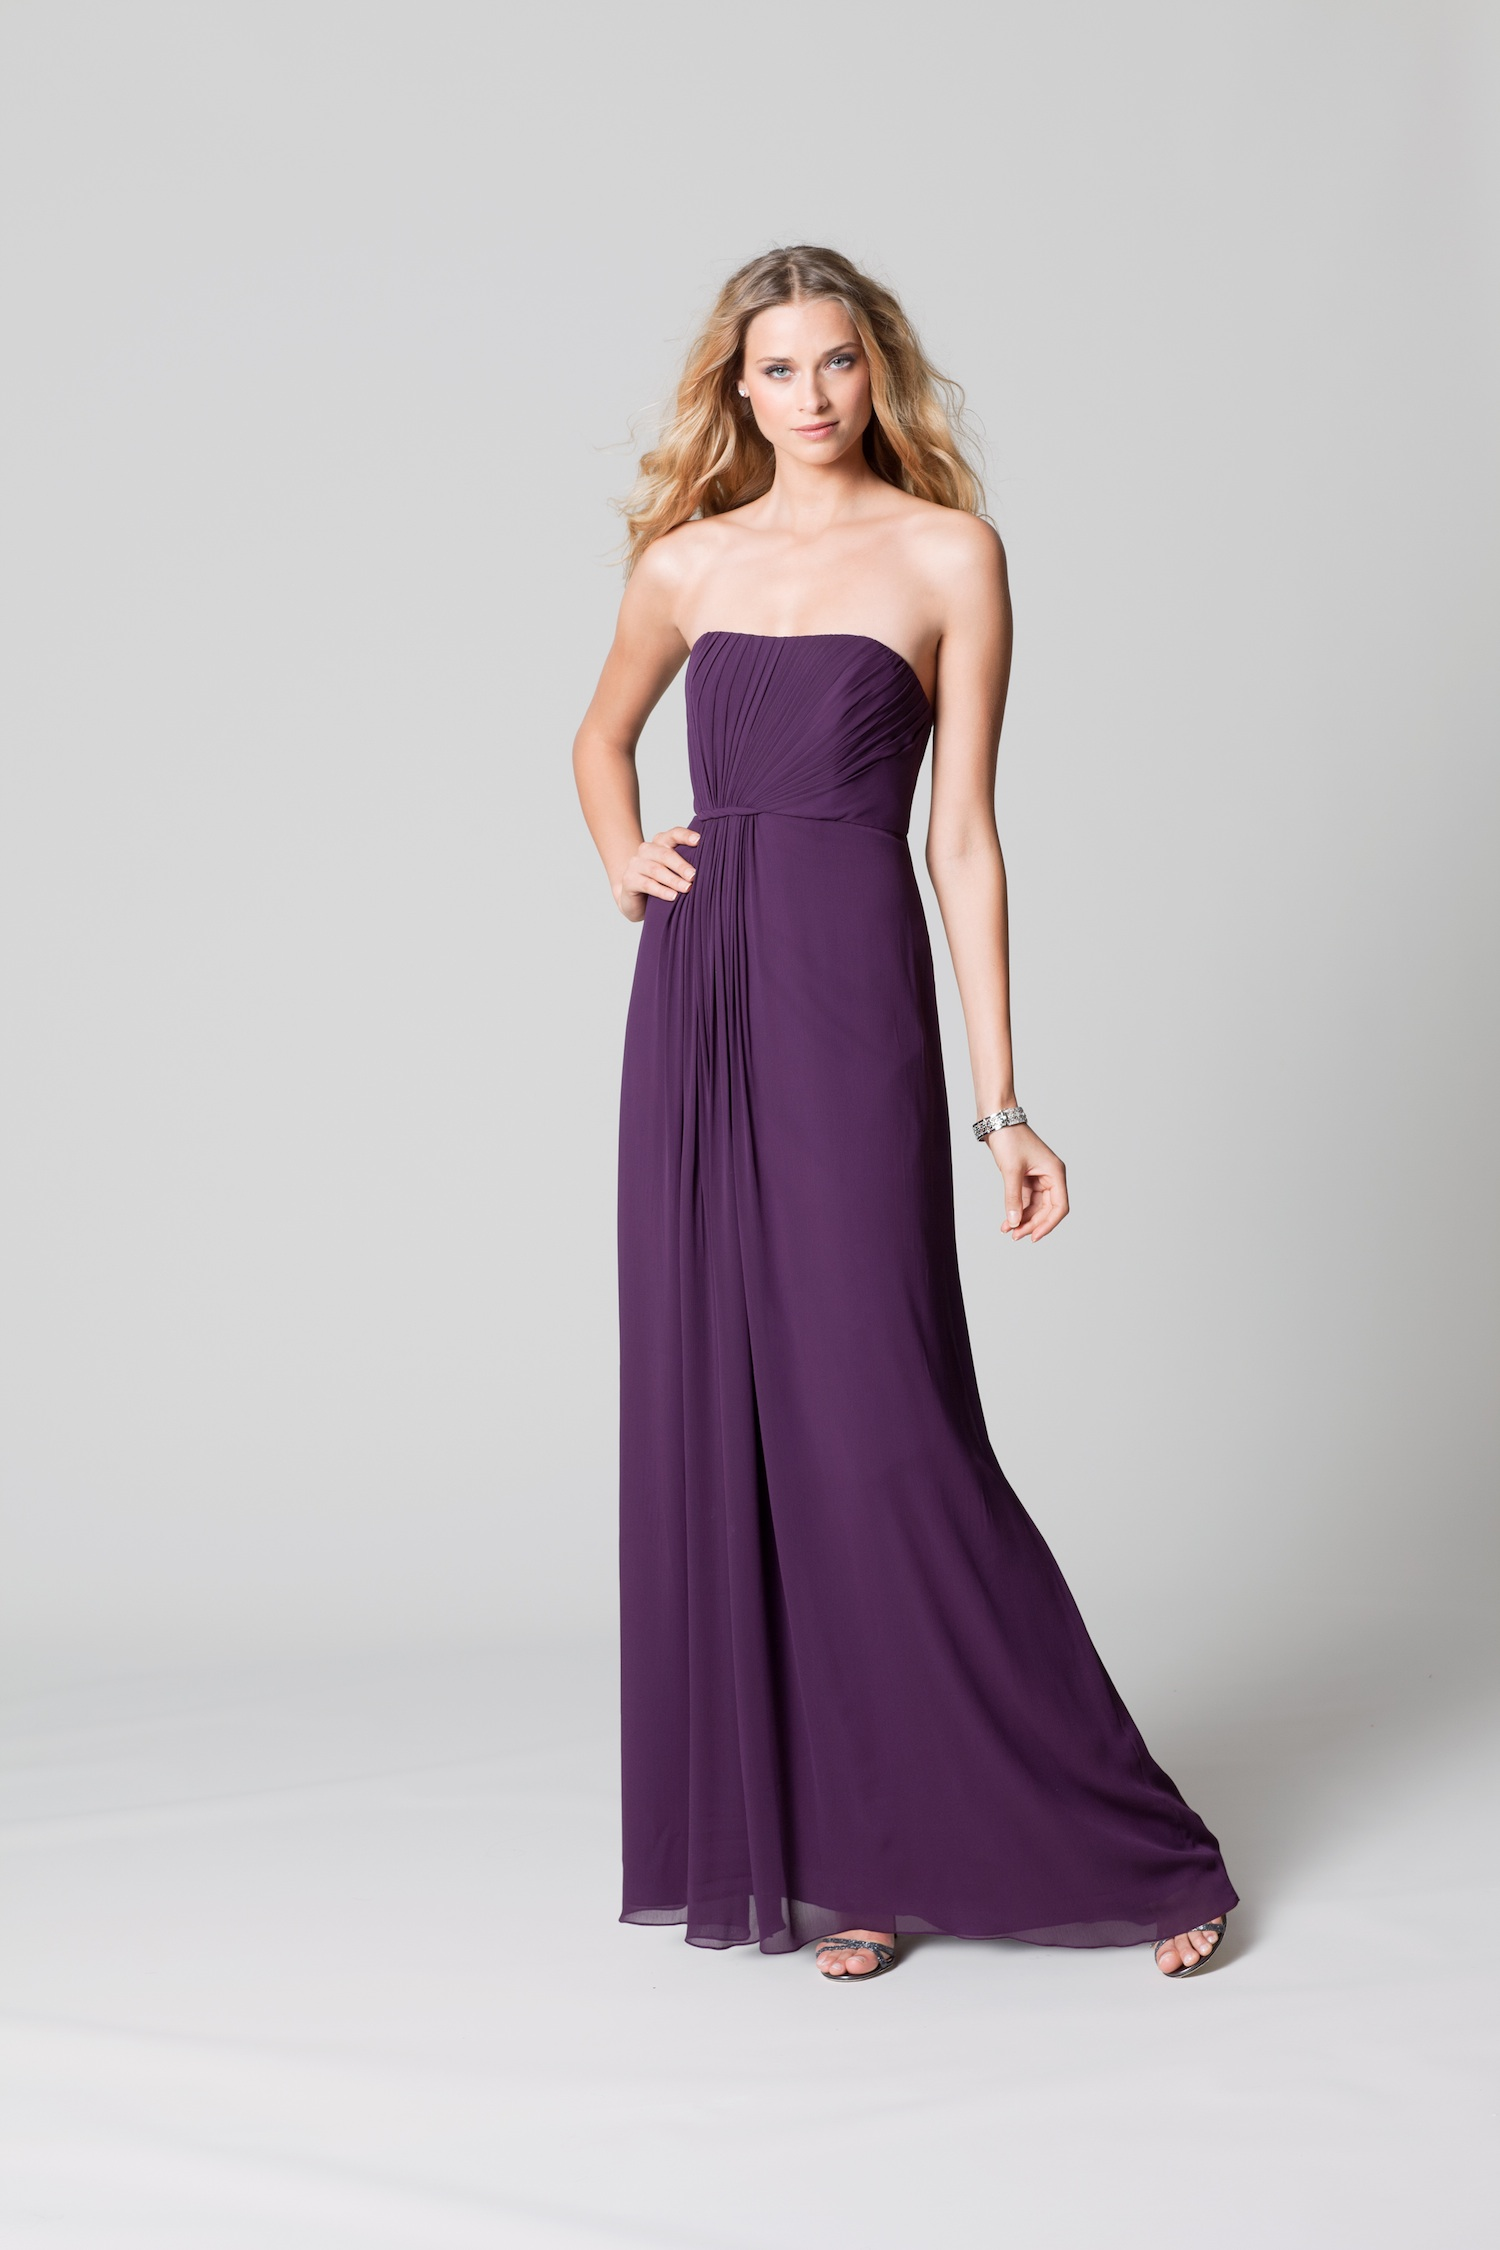 Great Fall Bridesmaid Dresses - Wedding Short Dresses